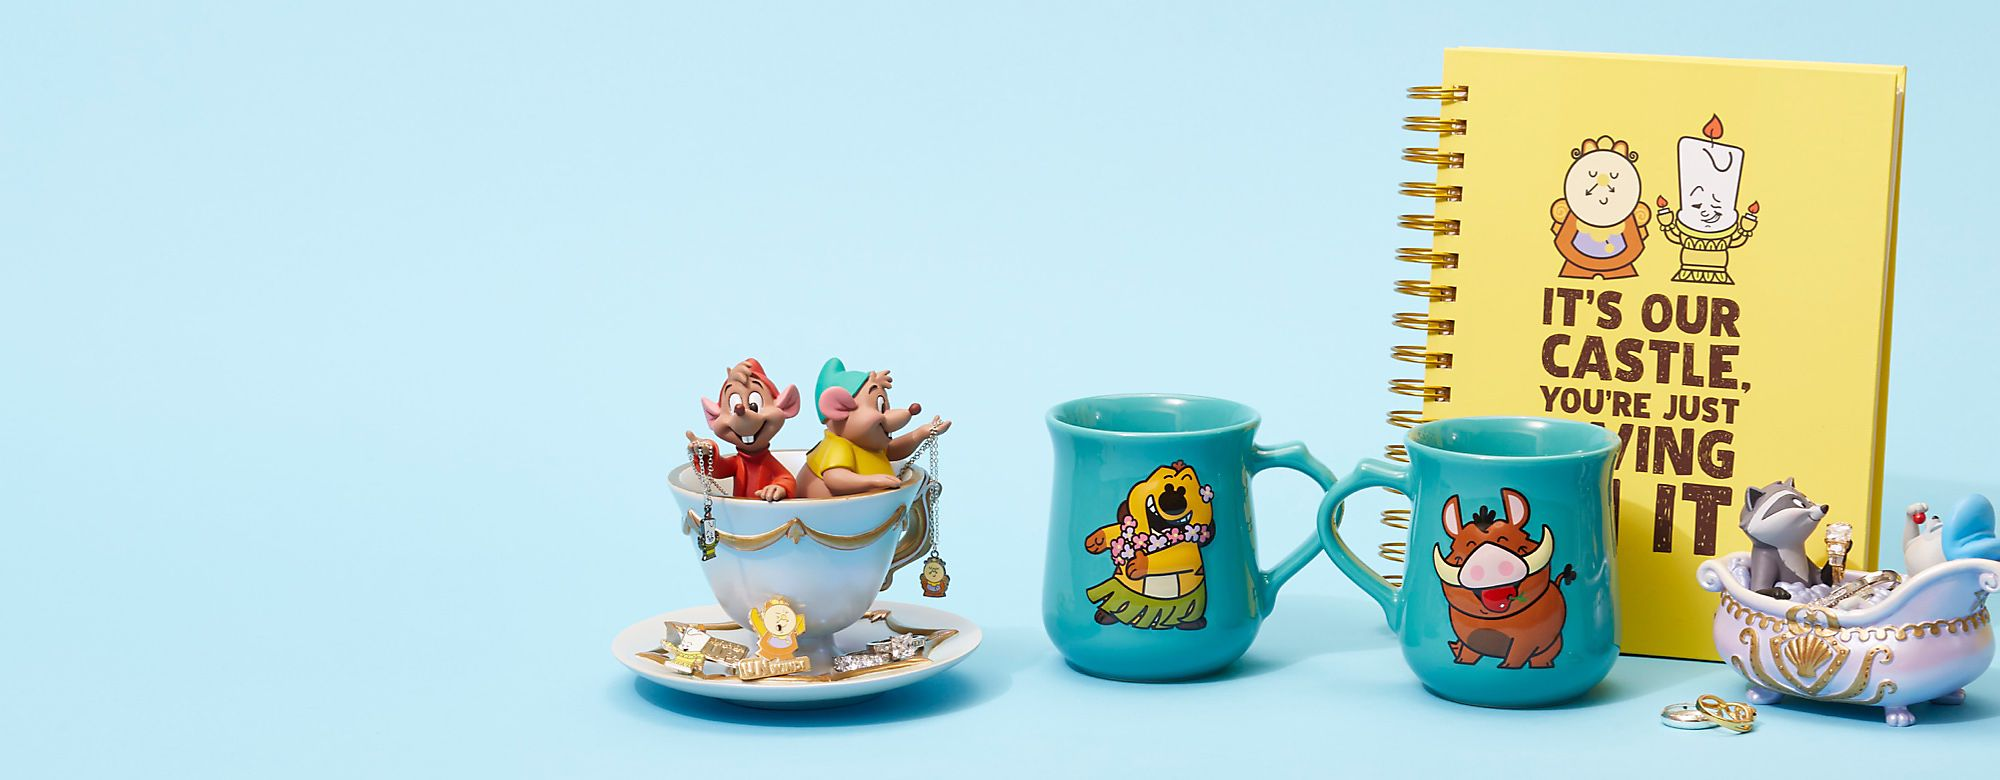 Dynamic Duos A delightful selection of accessories, homeware and stationery